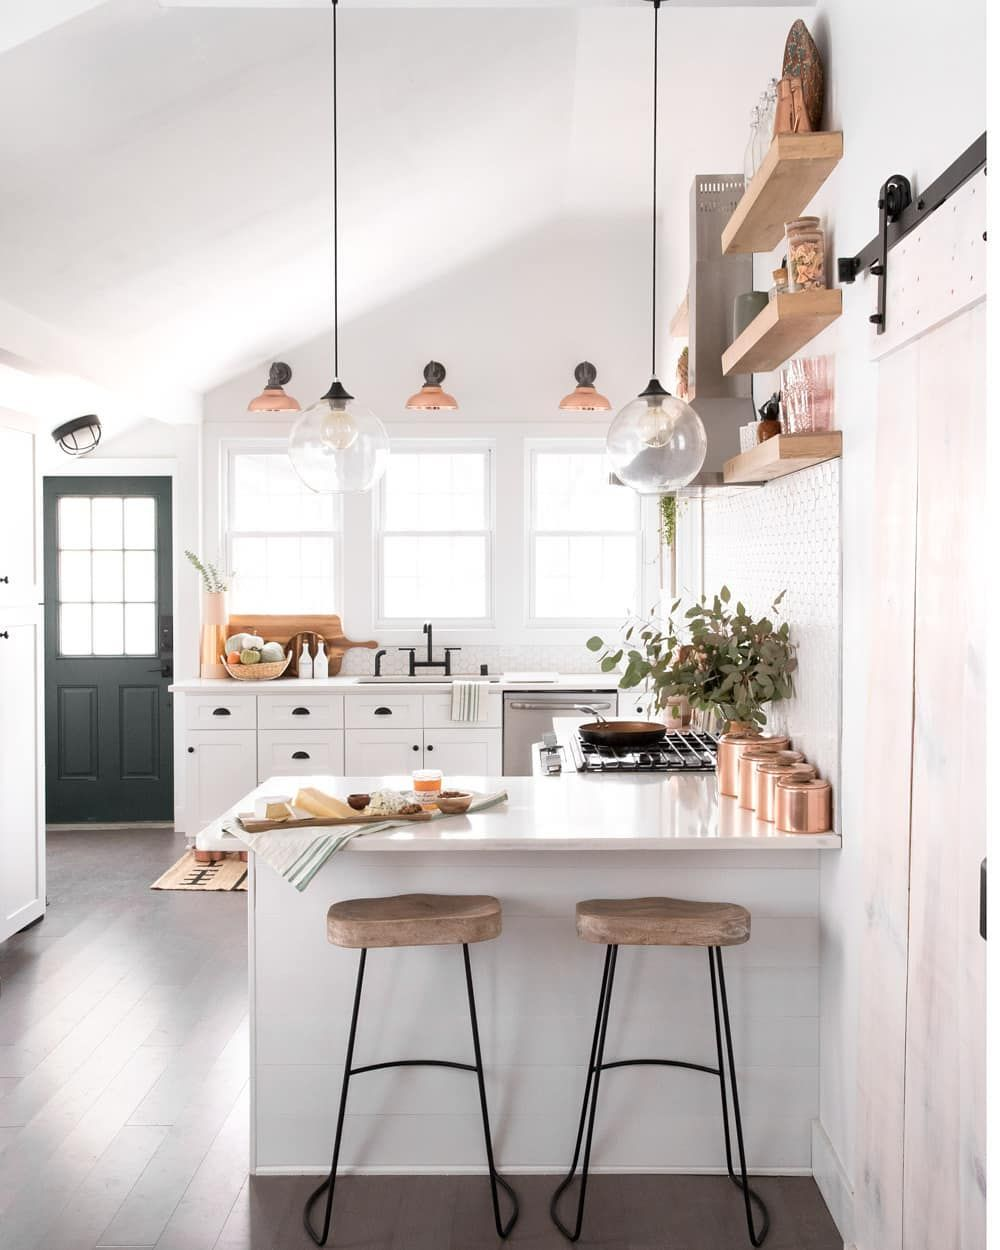 269 Likes, 3 Comments - Astrid | Gravity Home (@gravityhomeblog) on ...